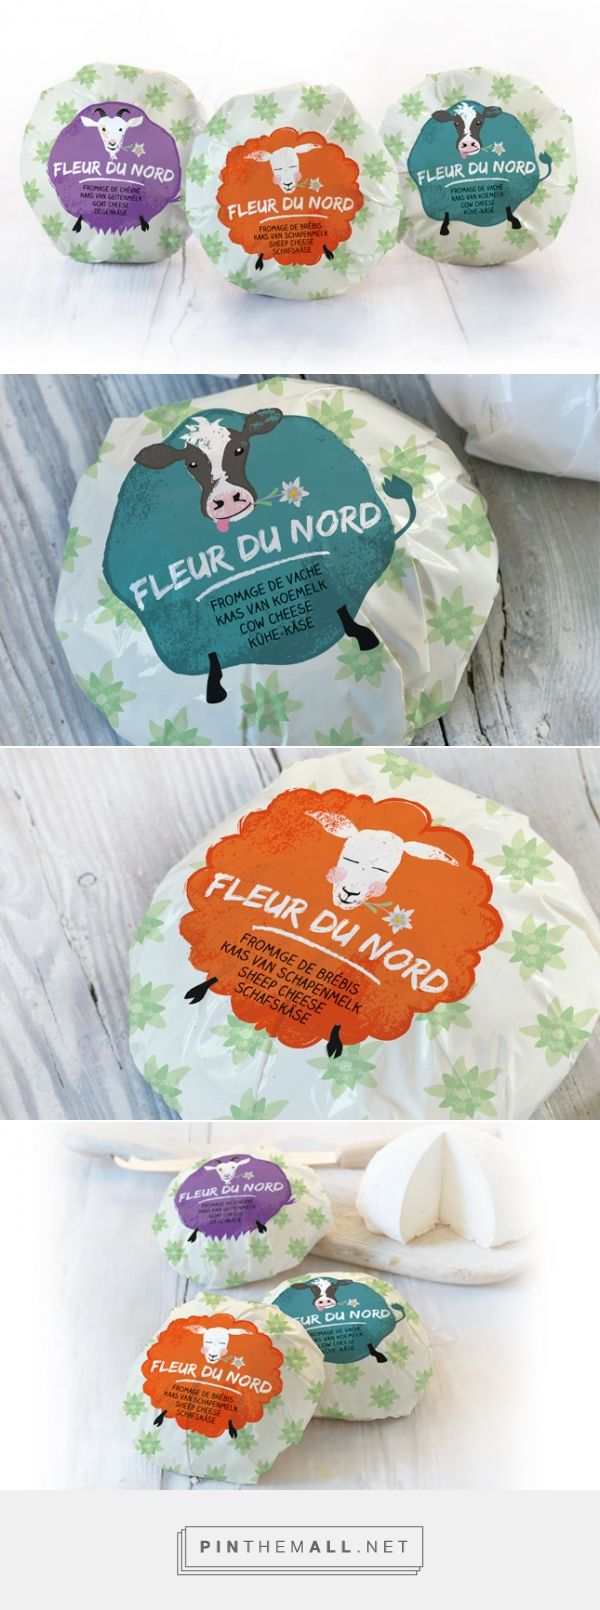 Fleur du Nord | Quatremains Damse Kaasmakerij curated by Packaging Diva PD.  A range of 3 authentic and artisan cheeses, each with different origin and the cutest packaging : )